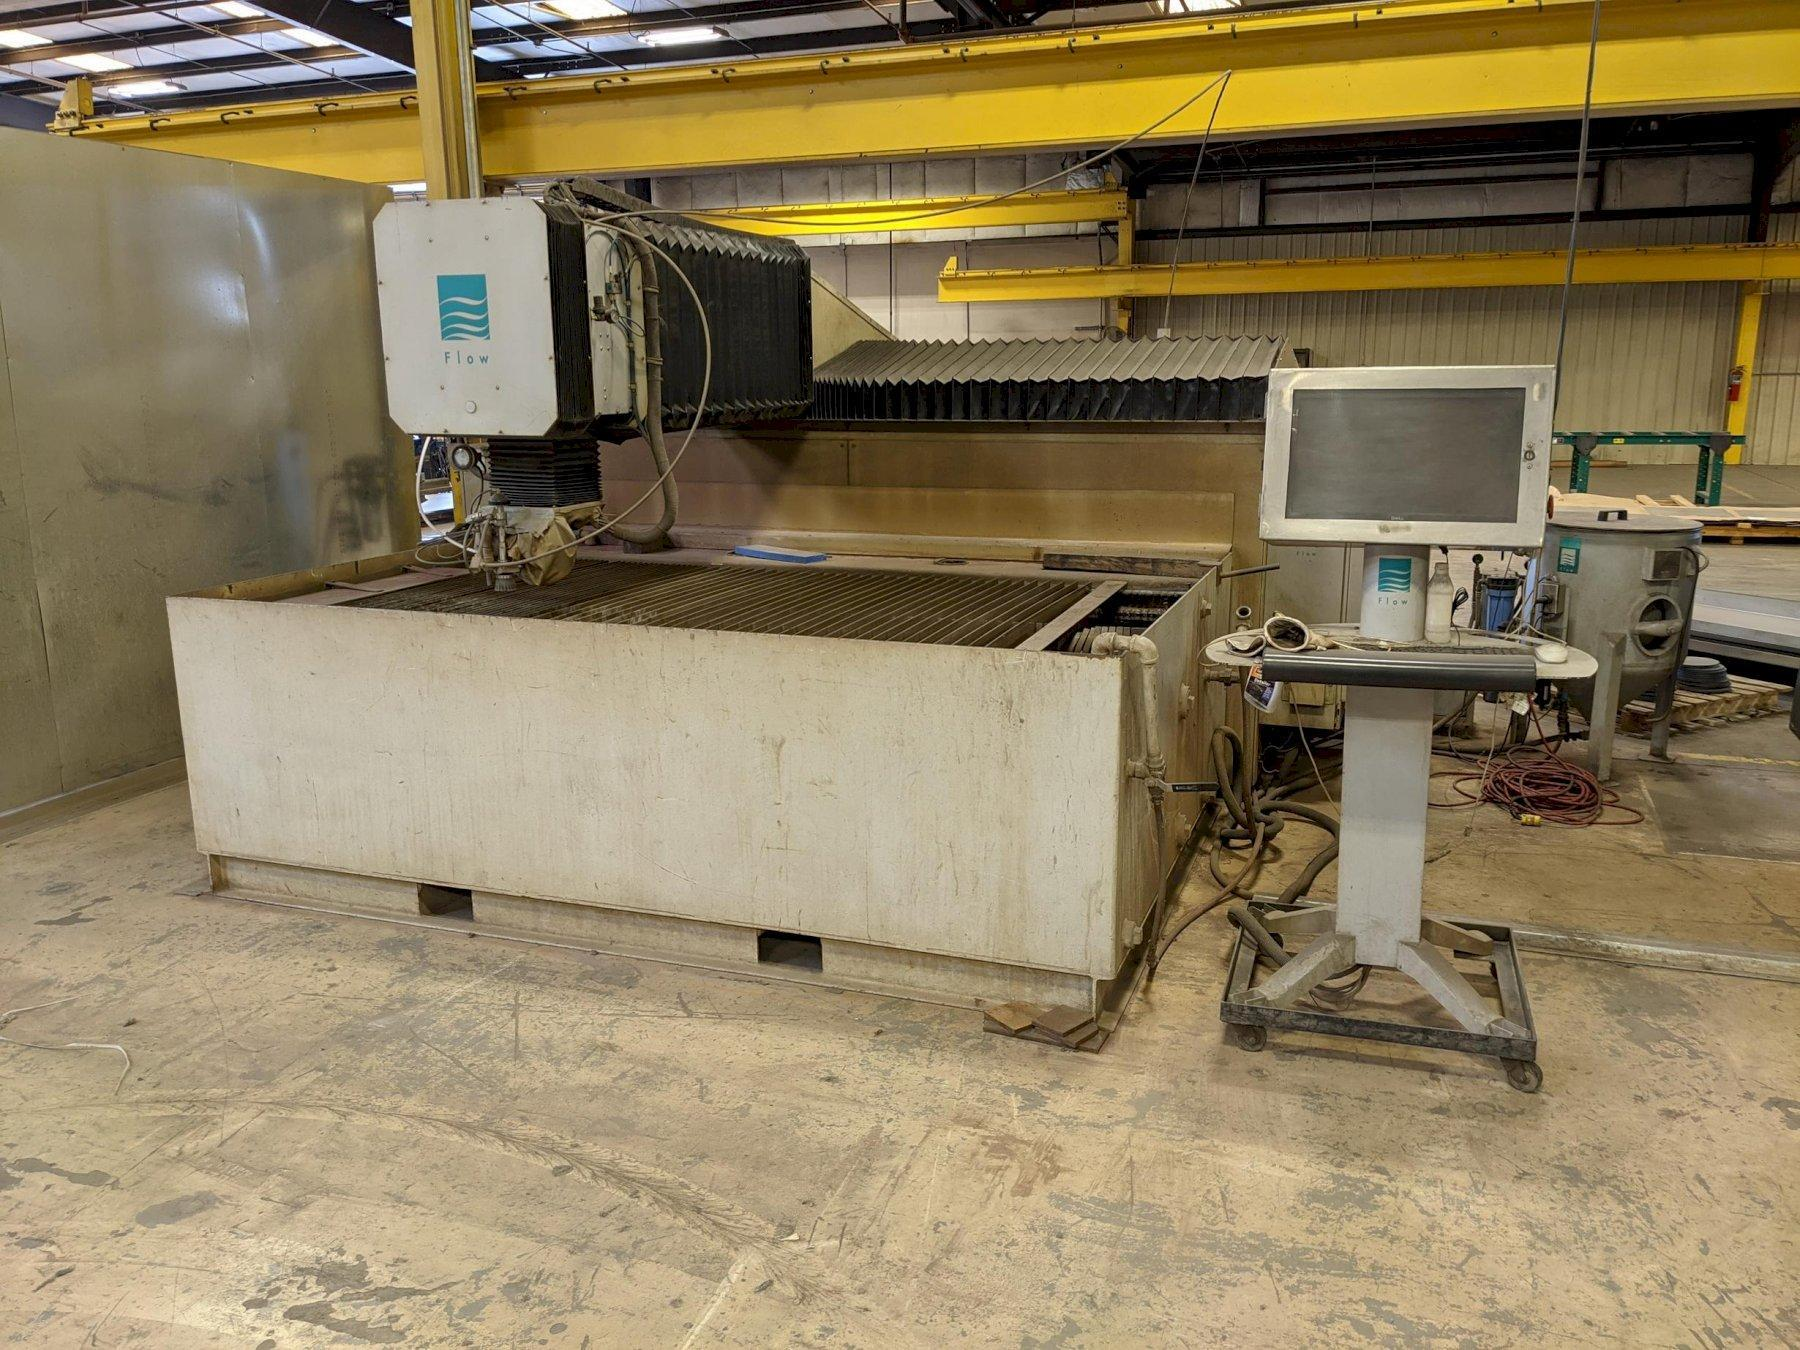 2006 Flow IFB 4800, 4x8, 60,000 PSI Waterjet Cutting Machine